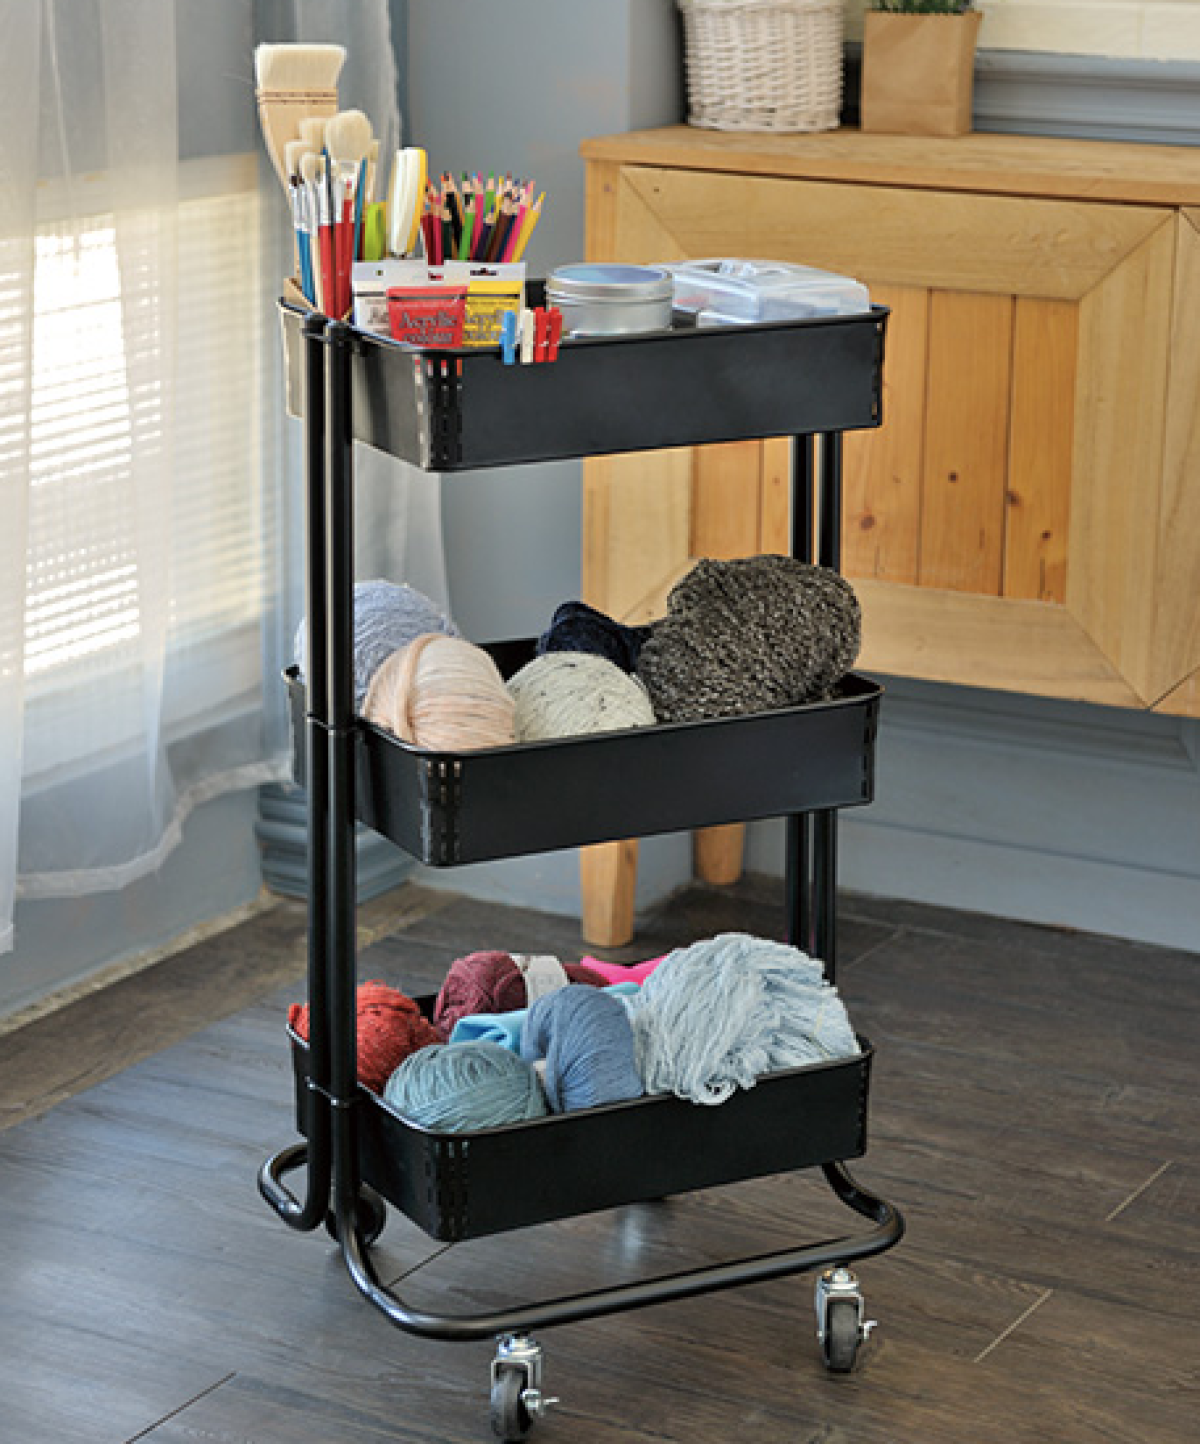 3 Tier Rolling Cart Only 15 At